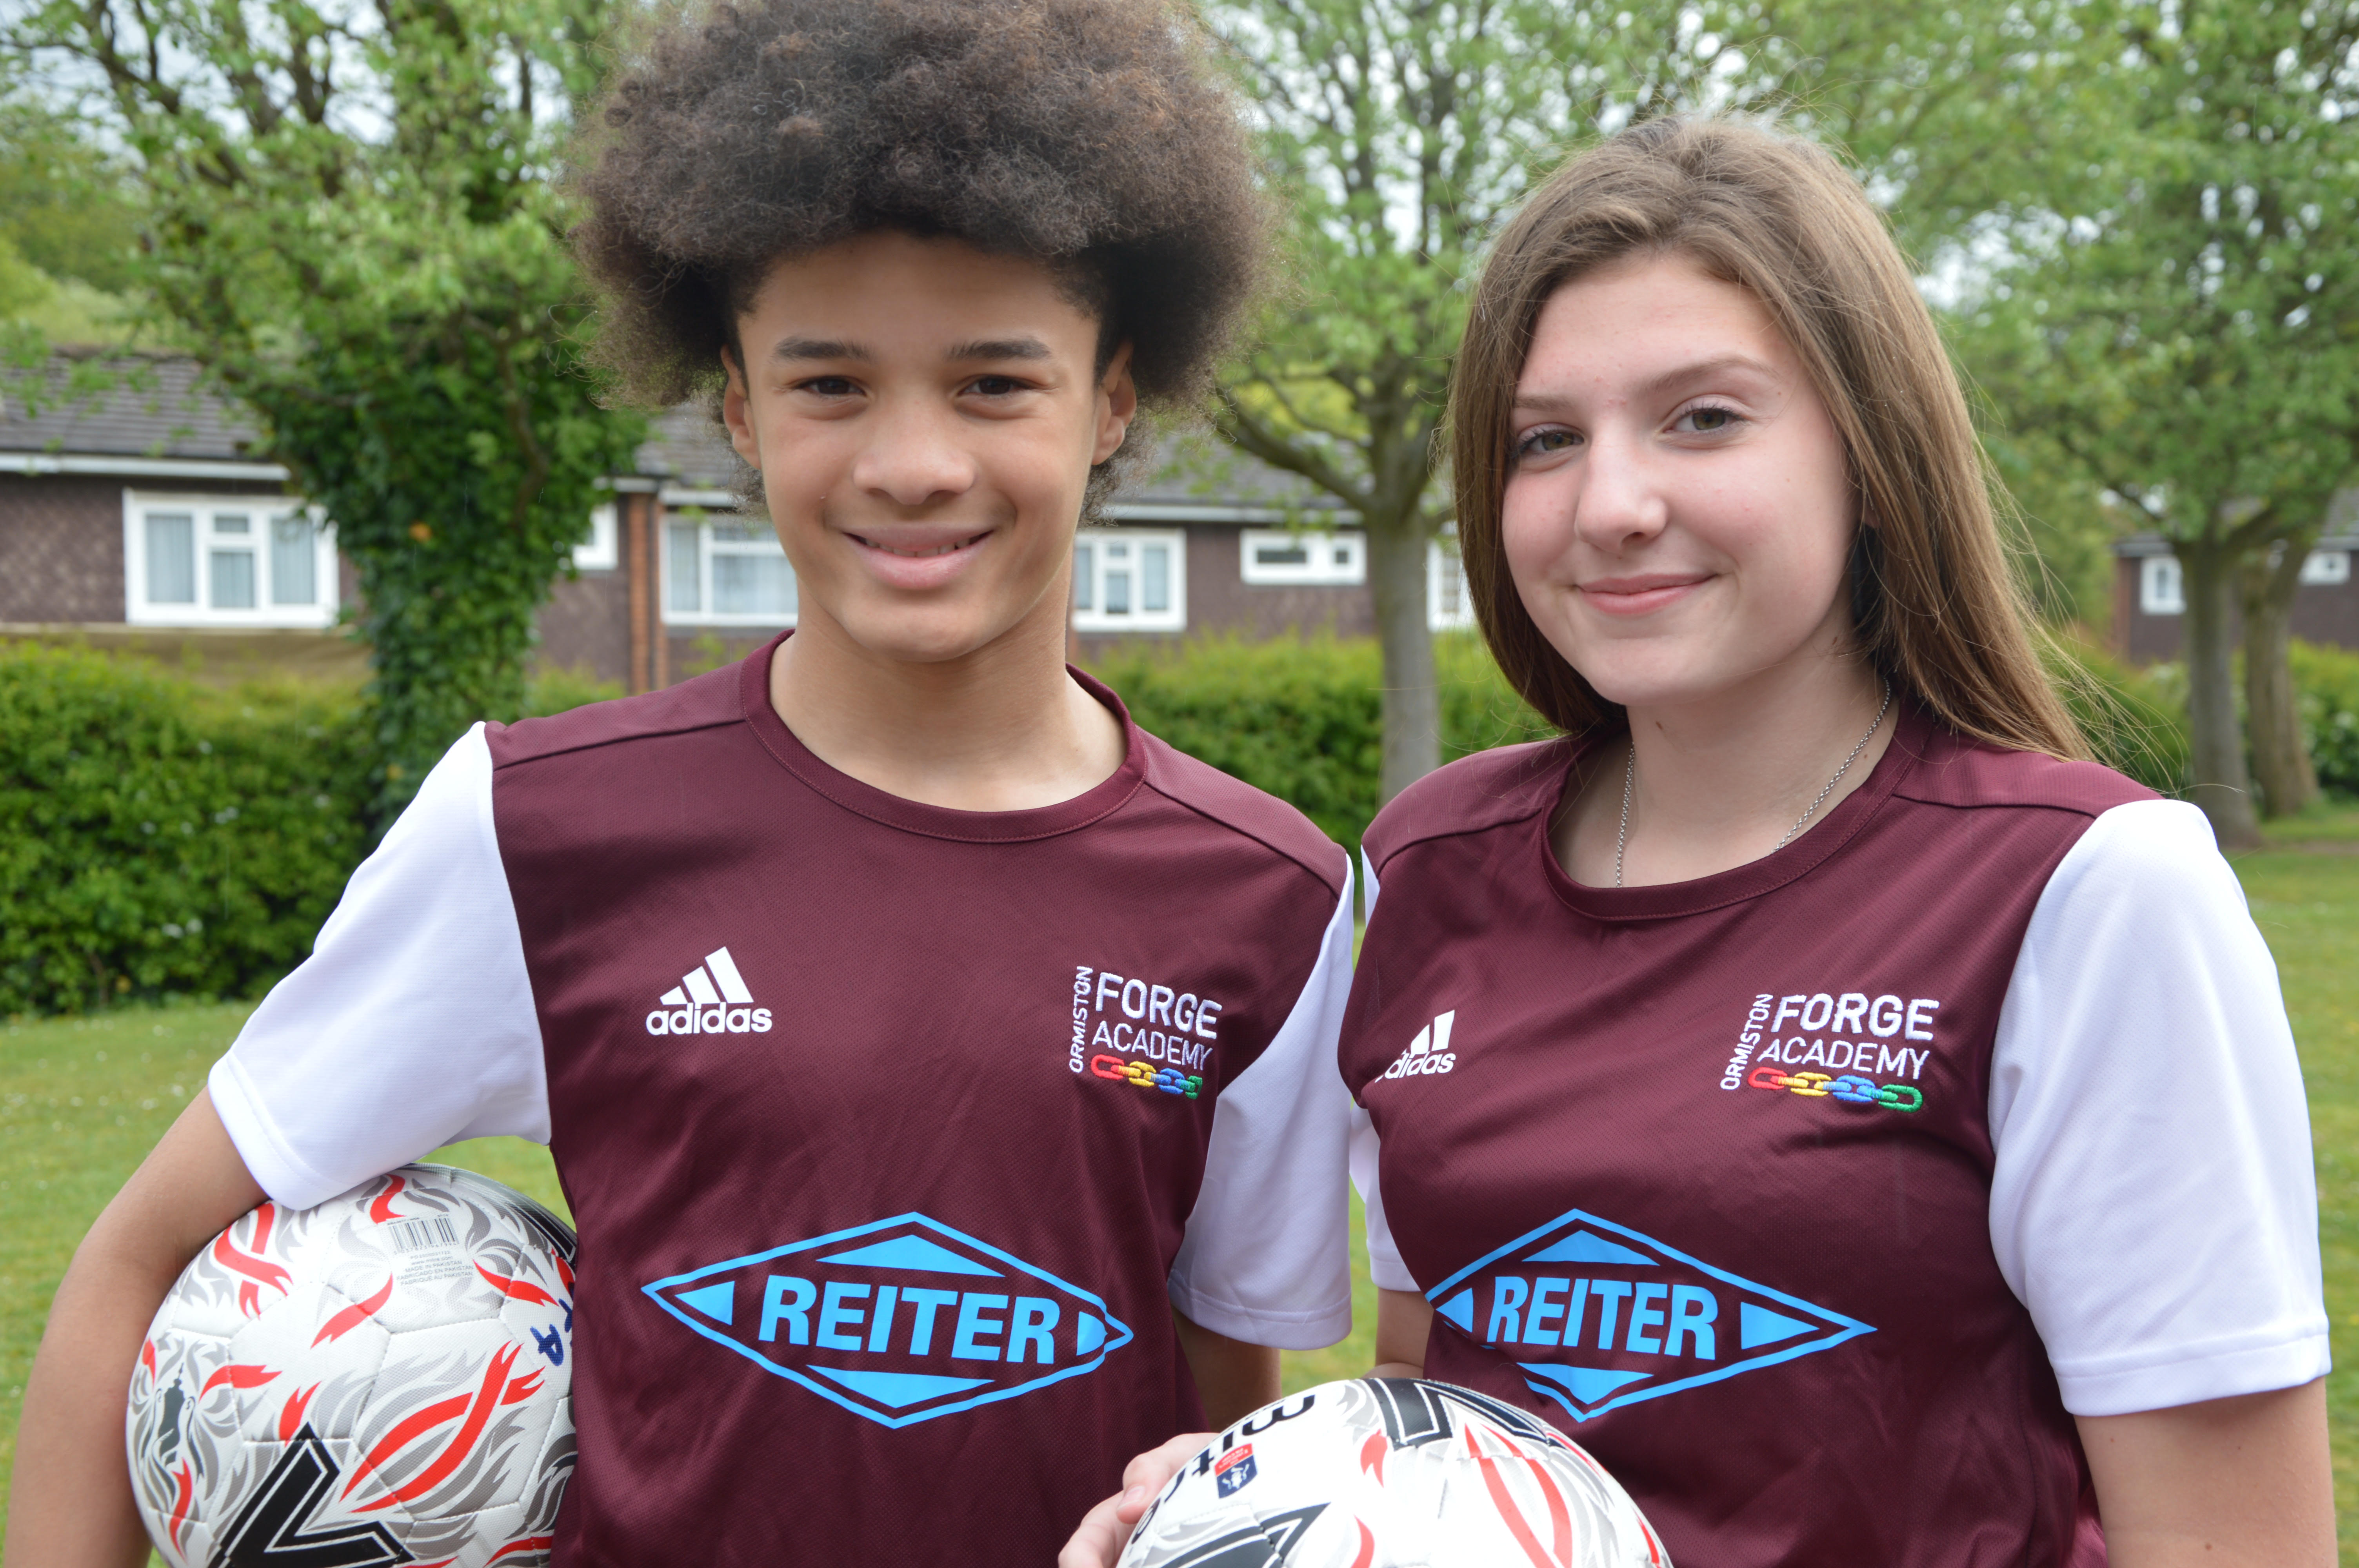 Forge footballers, Zacharia and Danielle, wearing the new sponsored shirts.